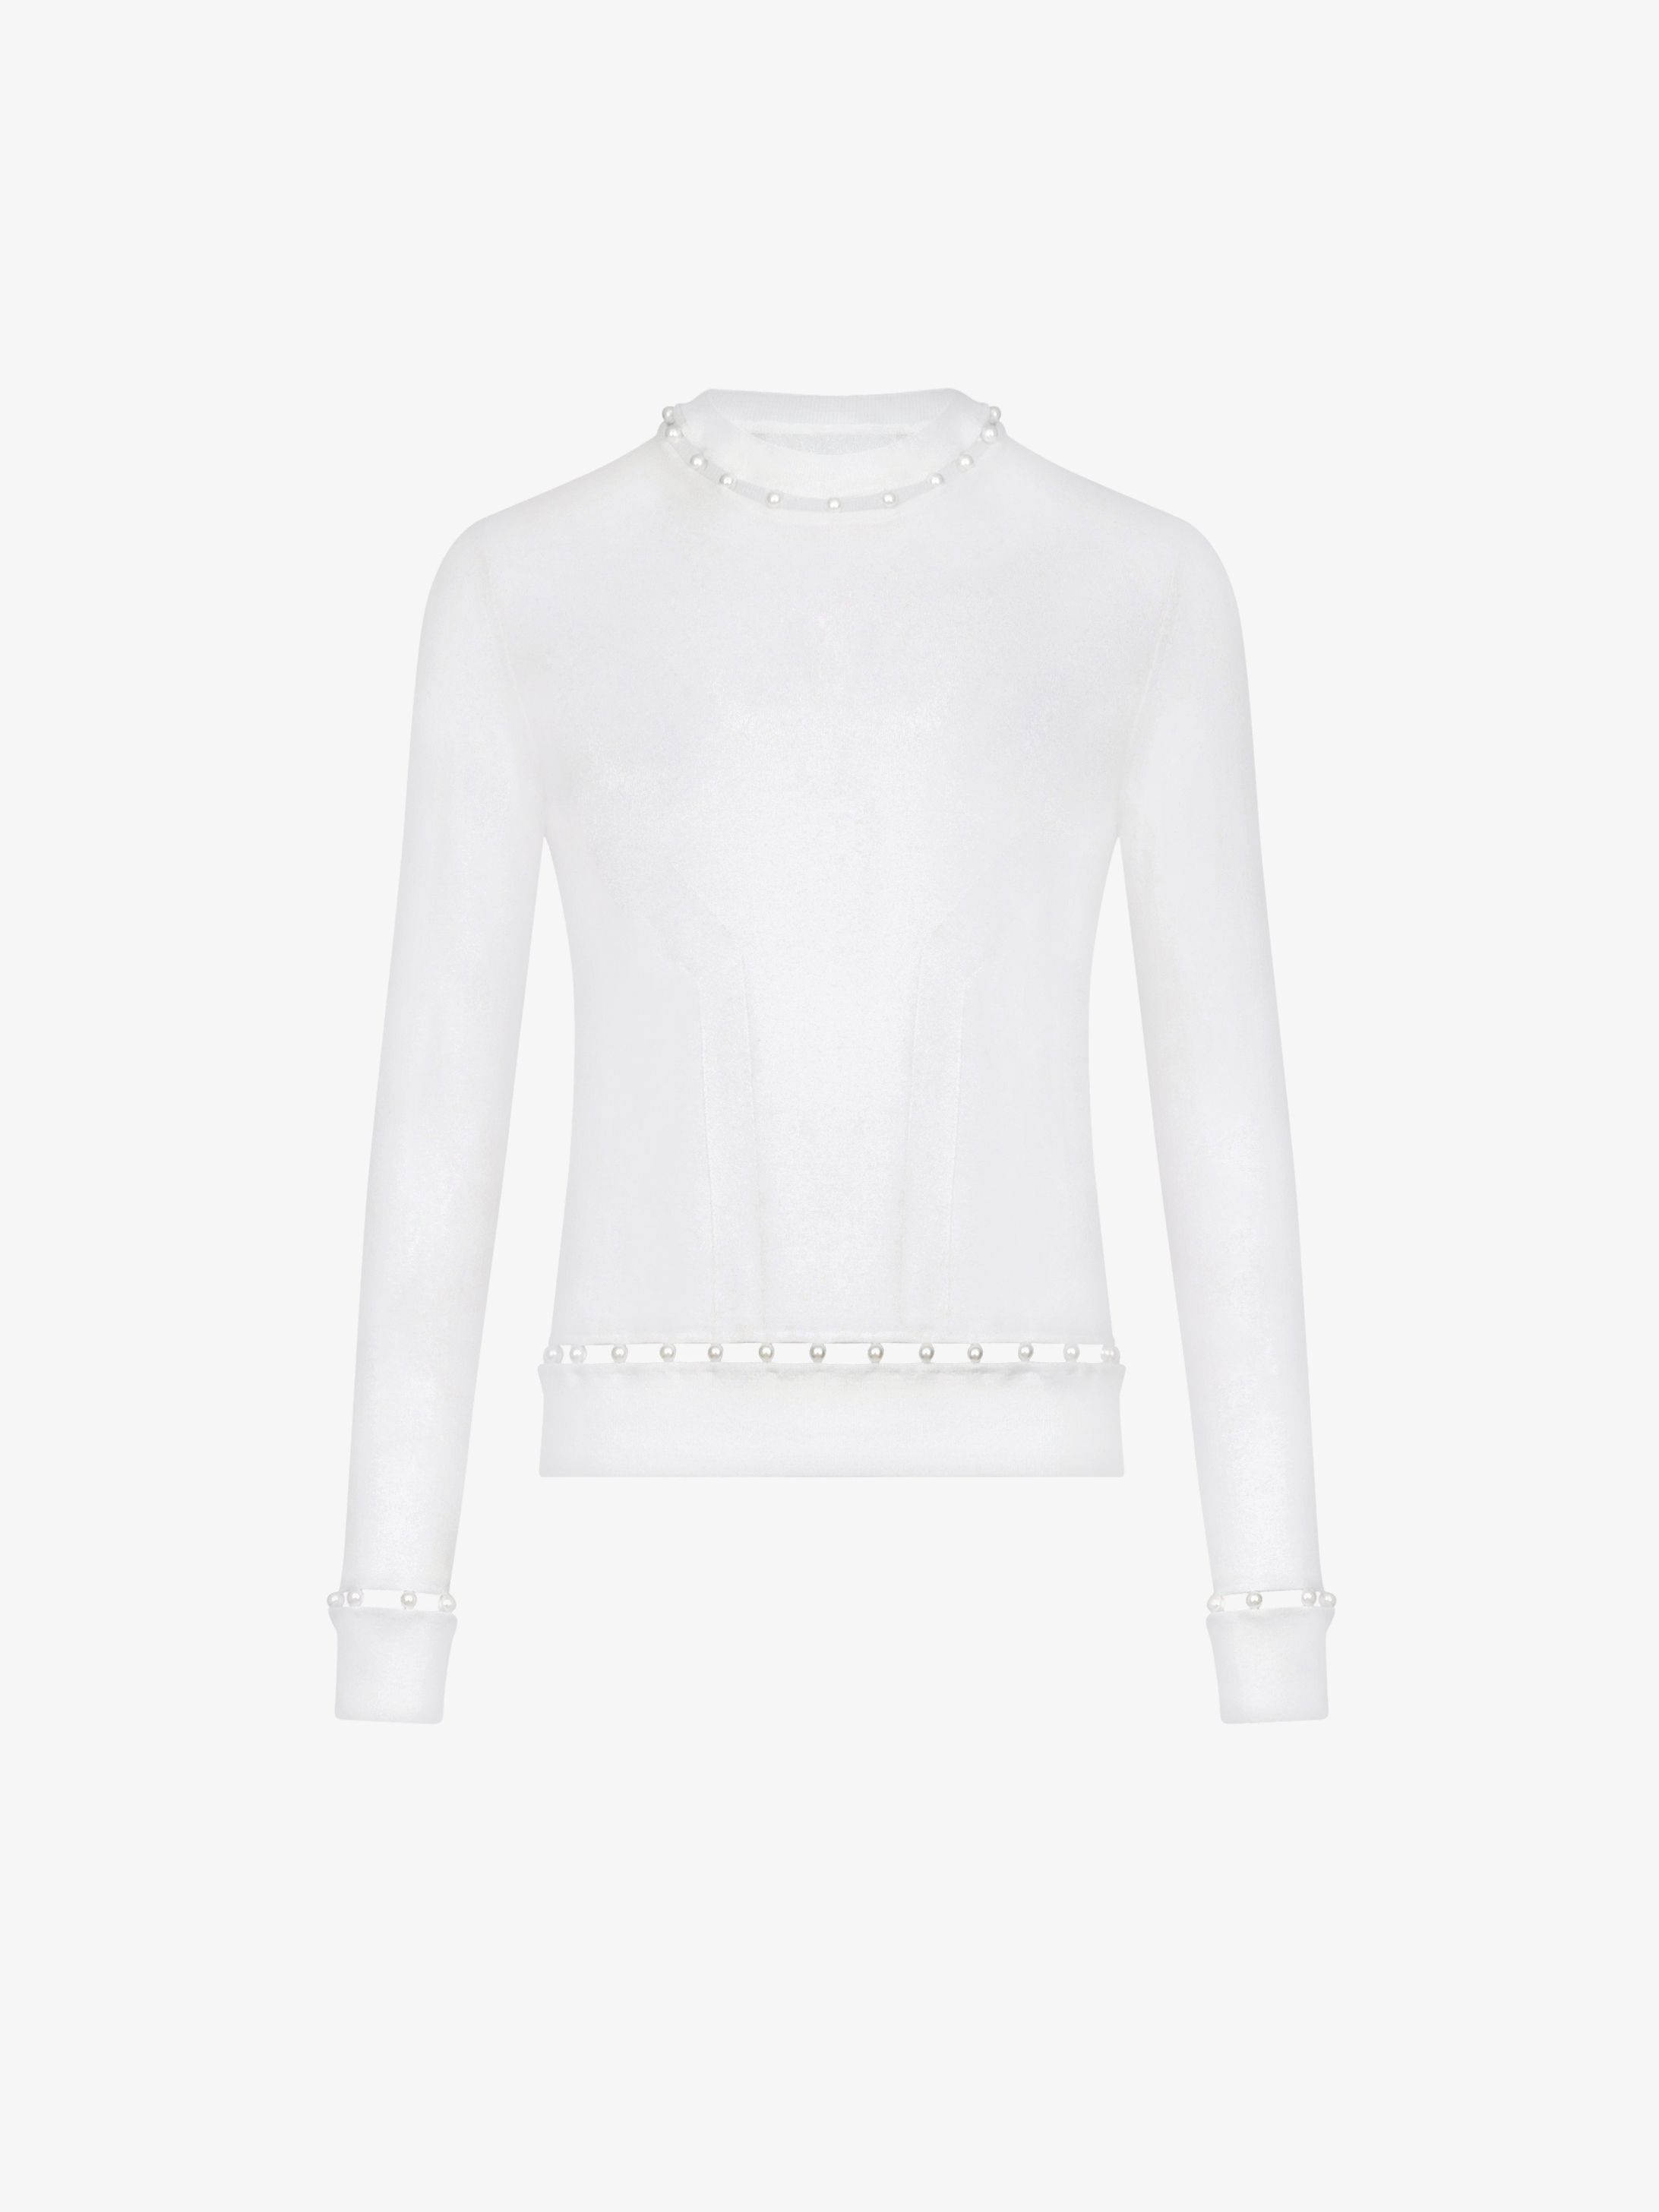 Crew neck jumper with pearls